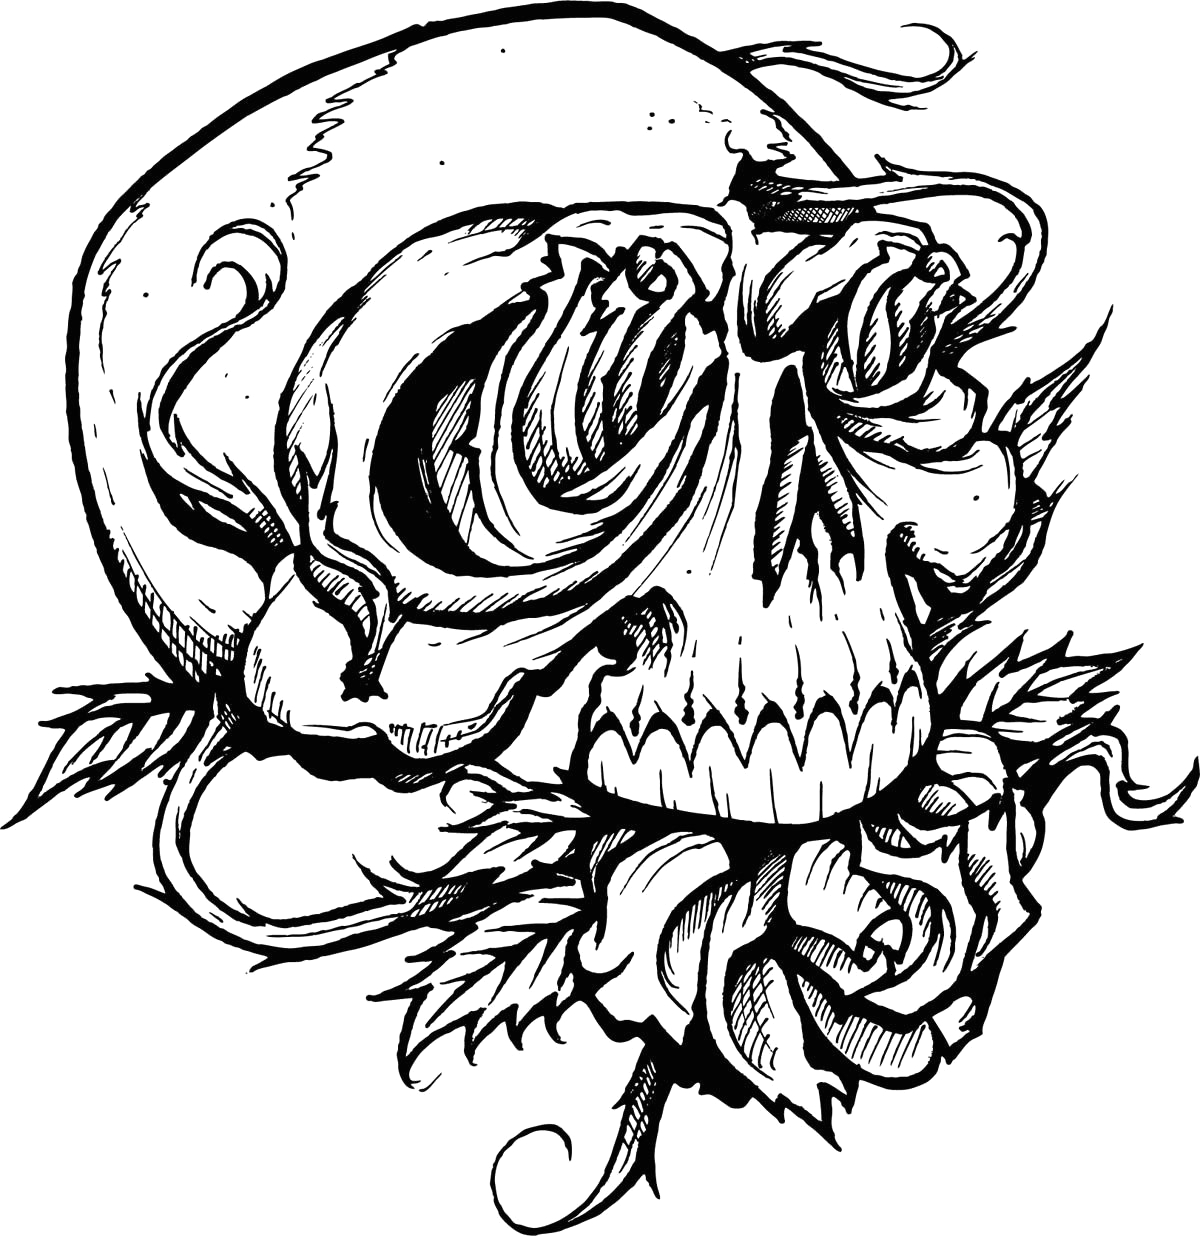 Free Online Printable Coloring Pages for Adults Free Printable Halloween Coloring Pages for Adults Best